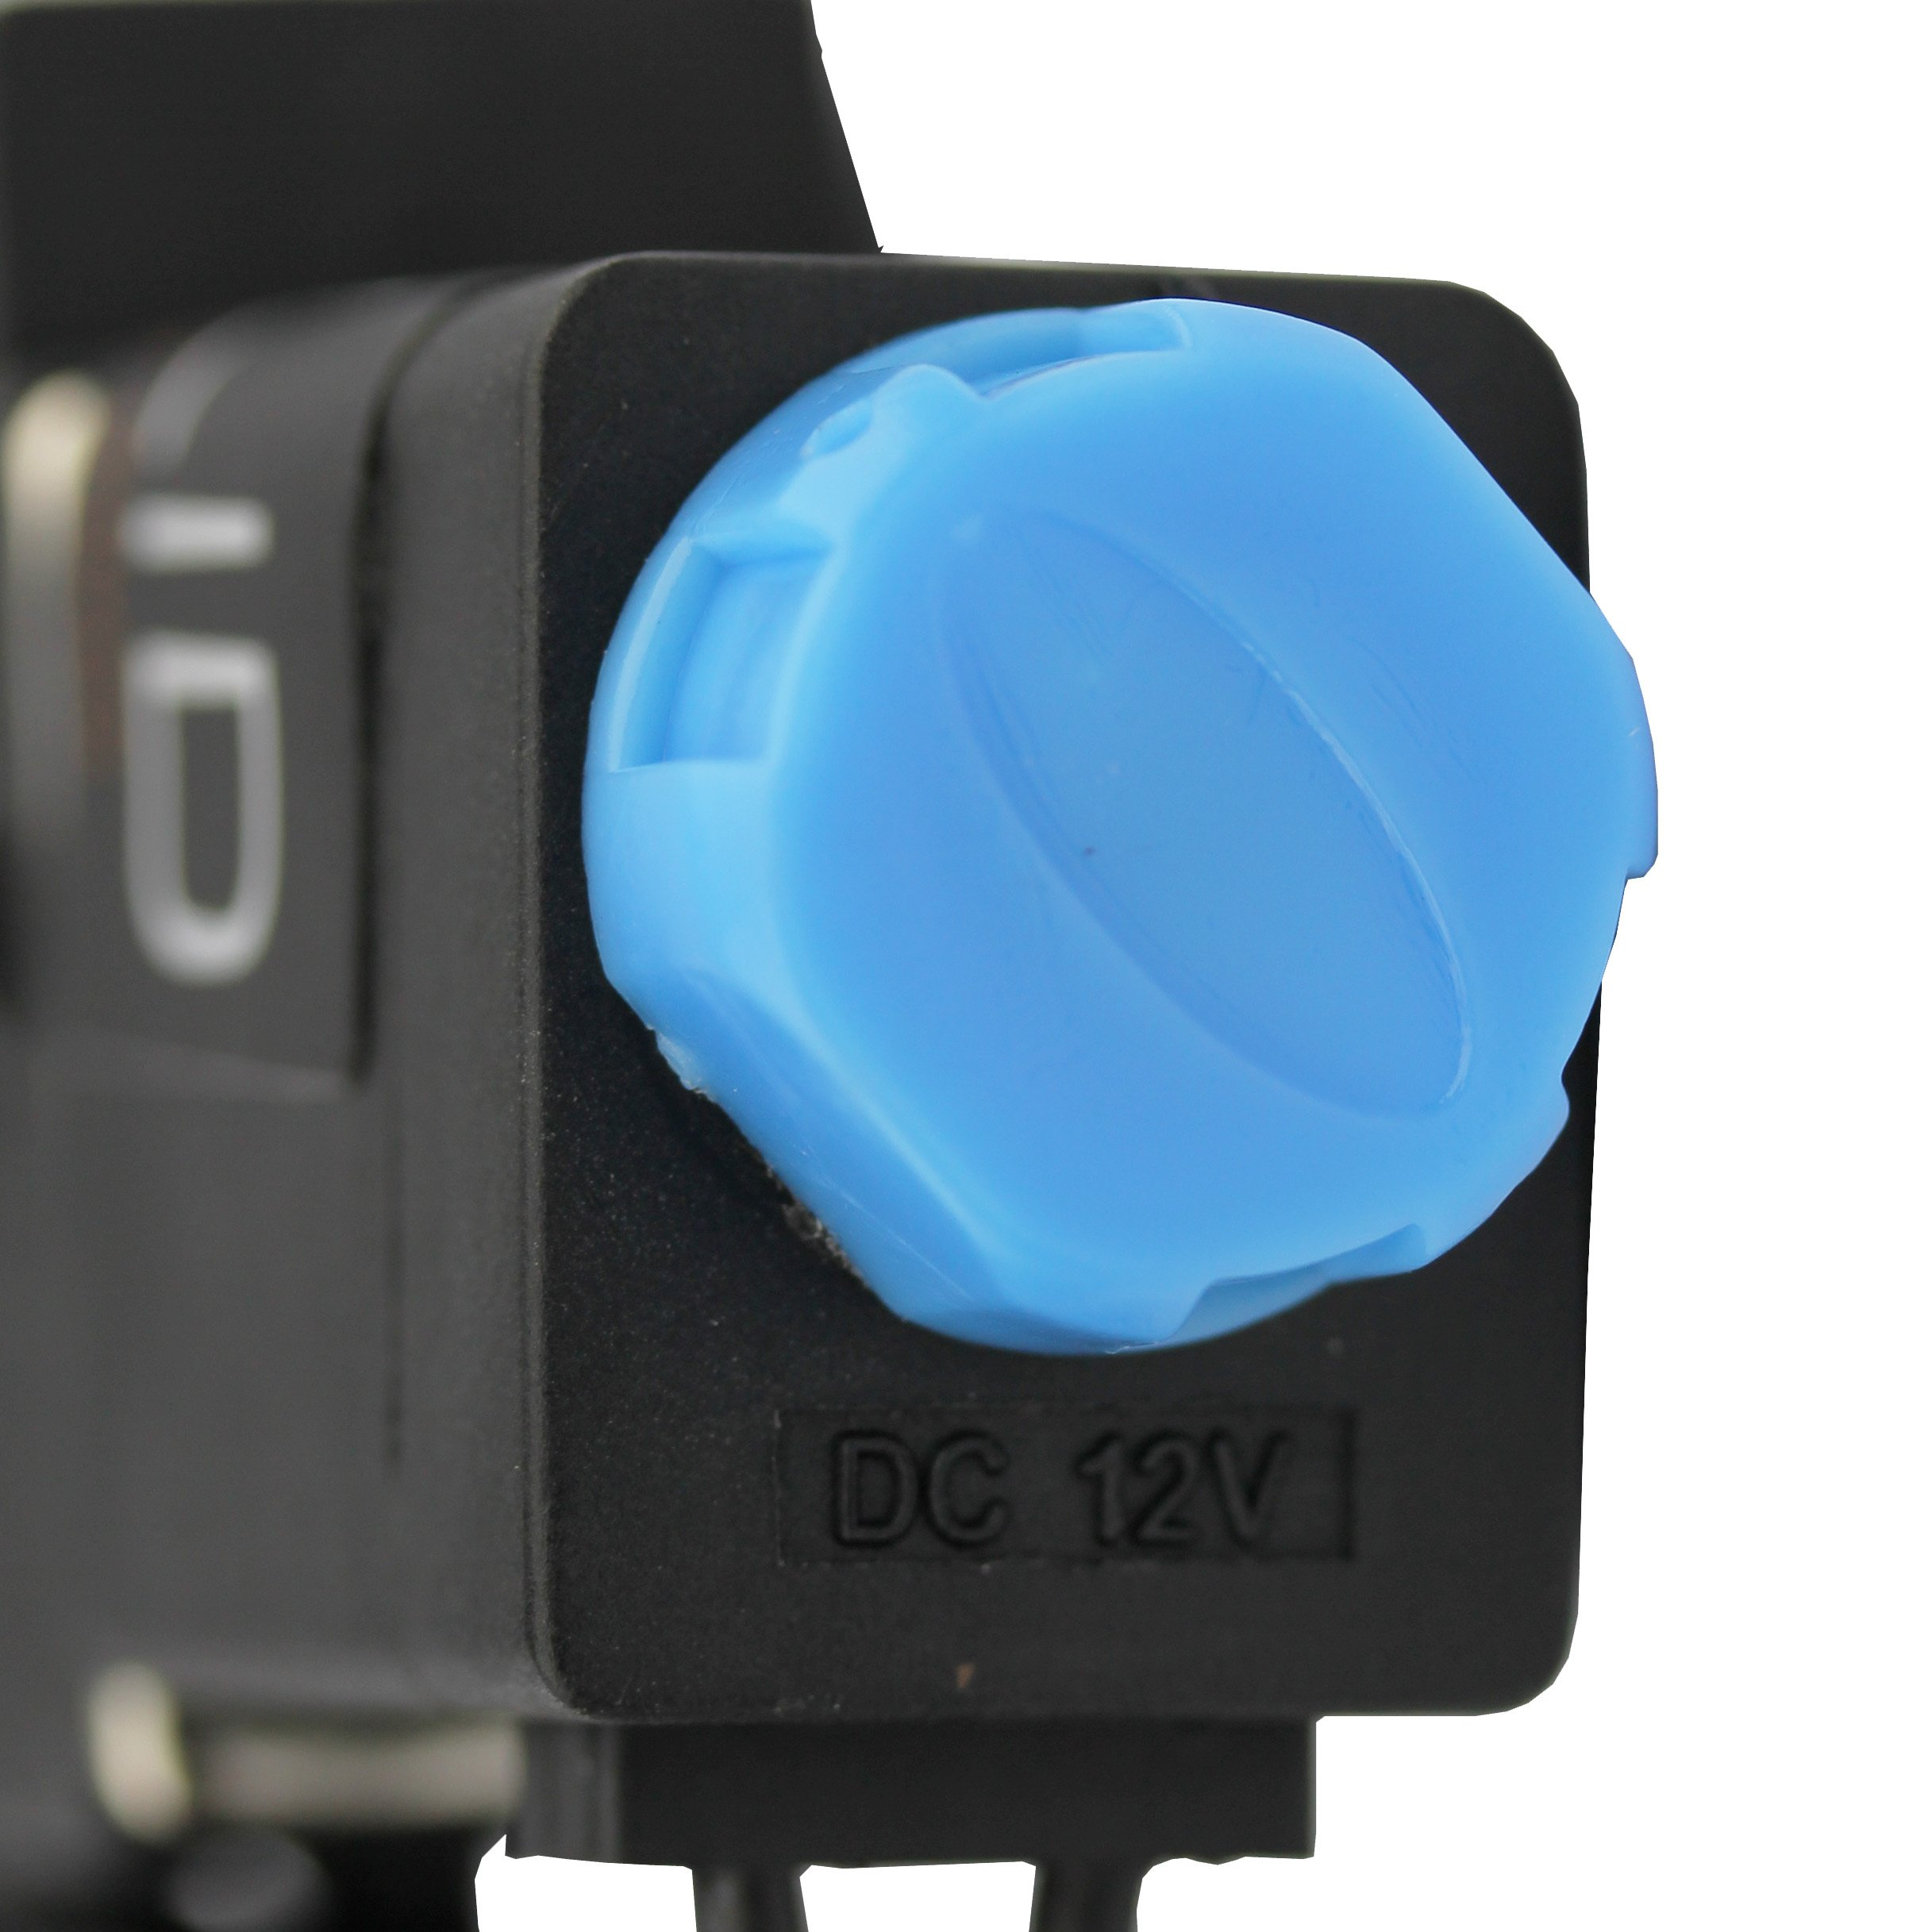 -NEW- Solenoid Valve 1/4'' Normally Closed (N.C.) 12VDC Nylon (NEW Improved Crack-resistant Polymer) Blue Cap by U.S. Solid by U.S. Solid (Image #4)